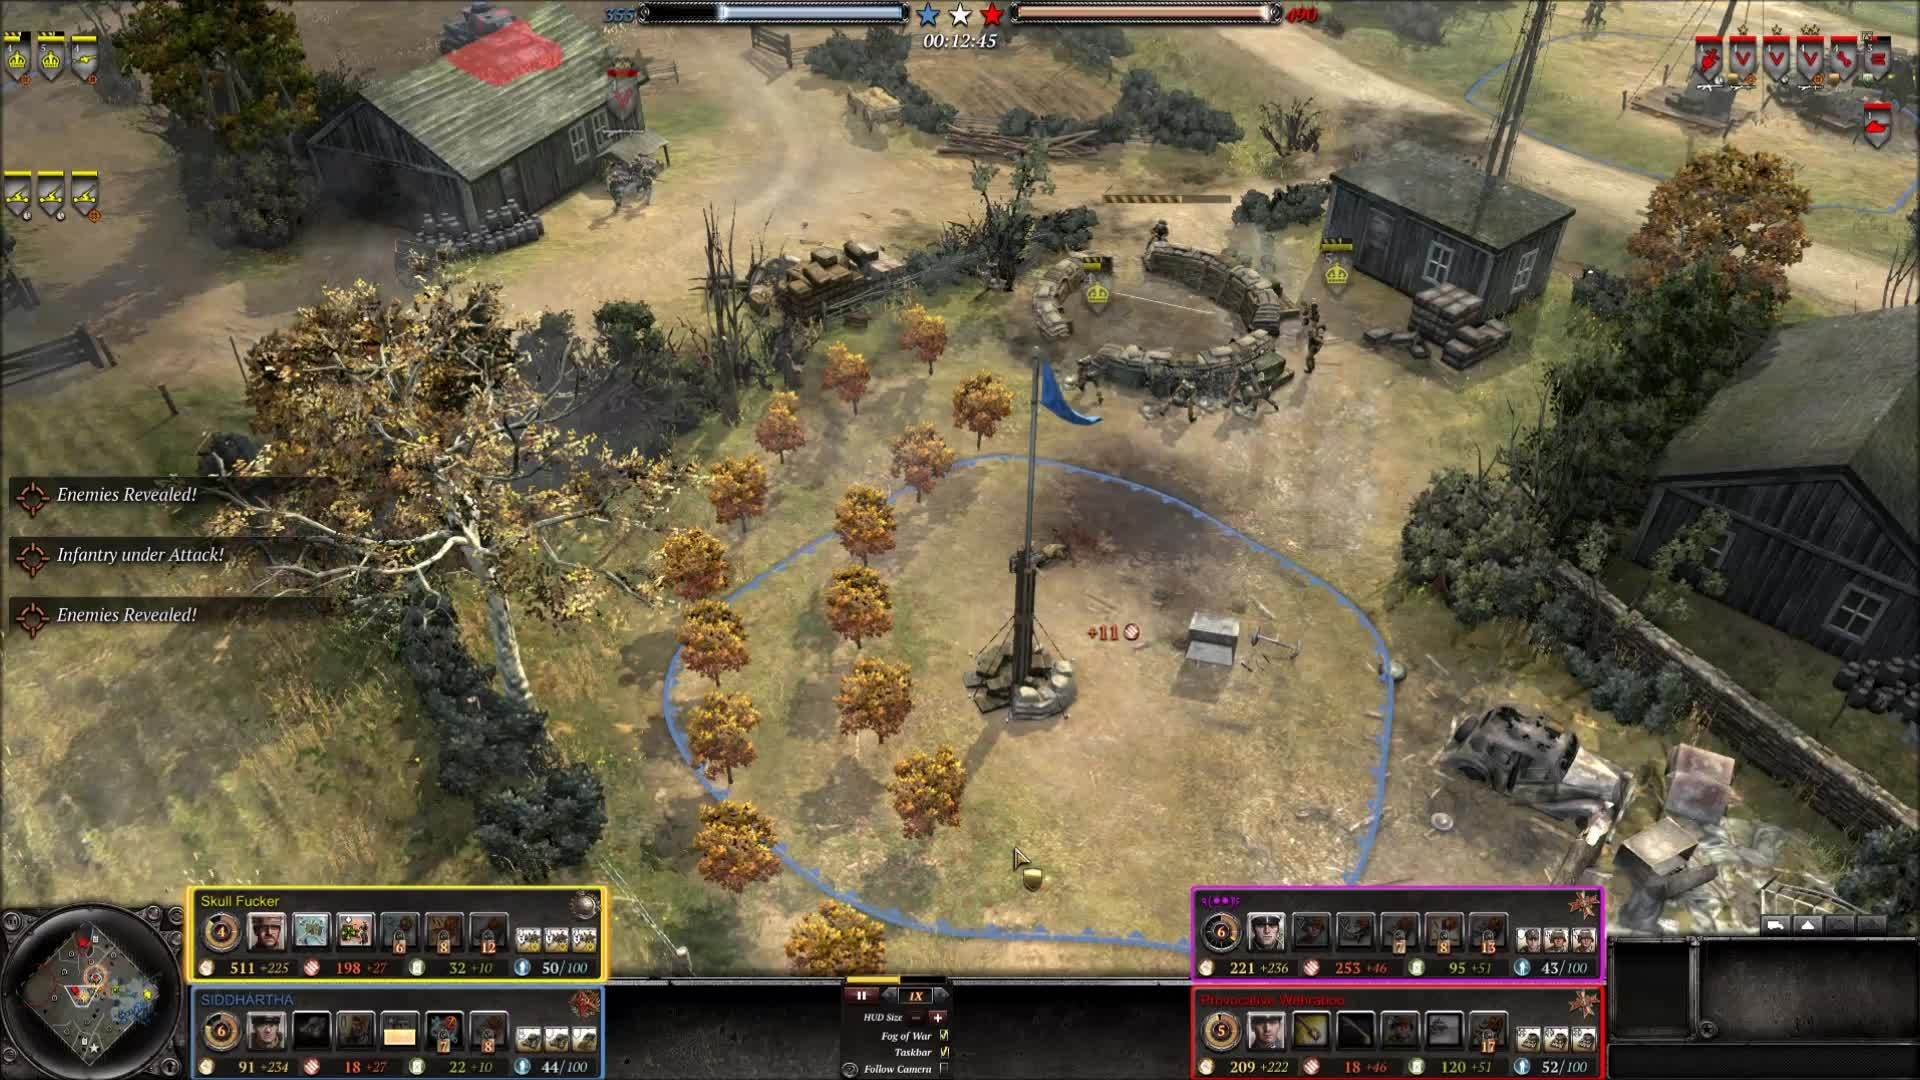 CompanyOfHeroes, companyofheroes, How to deal with bofors spam GIFs